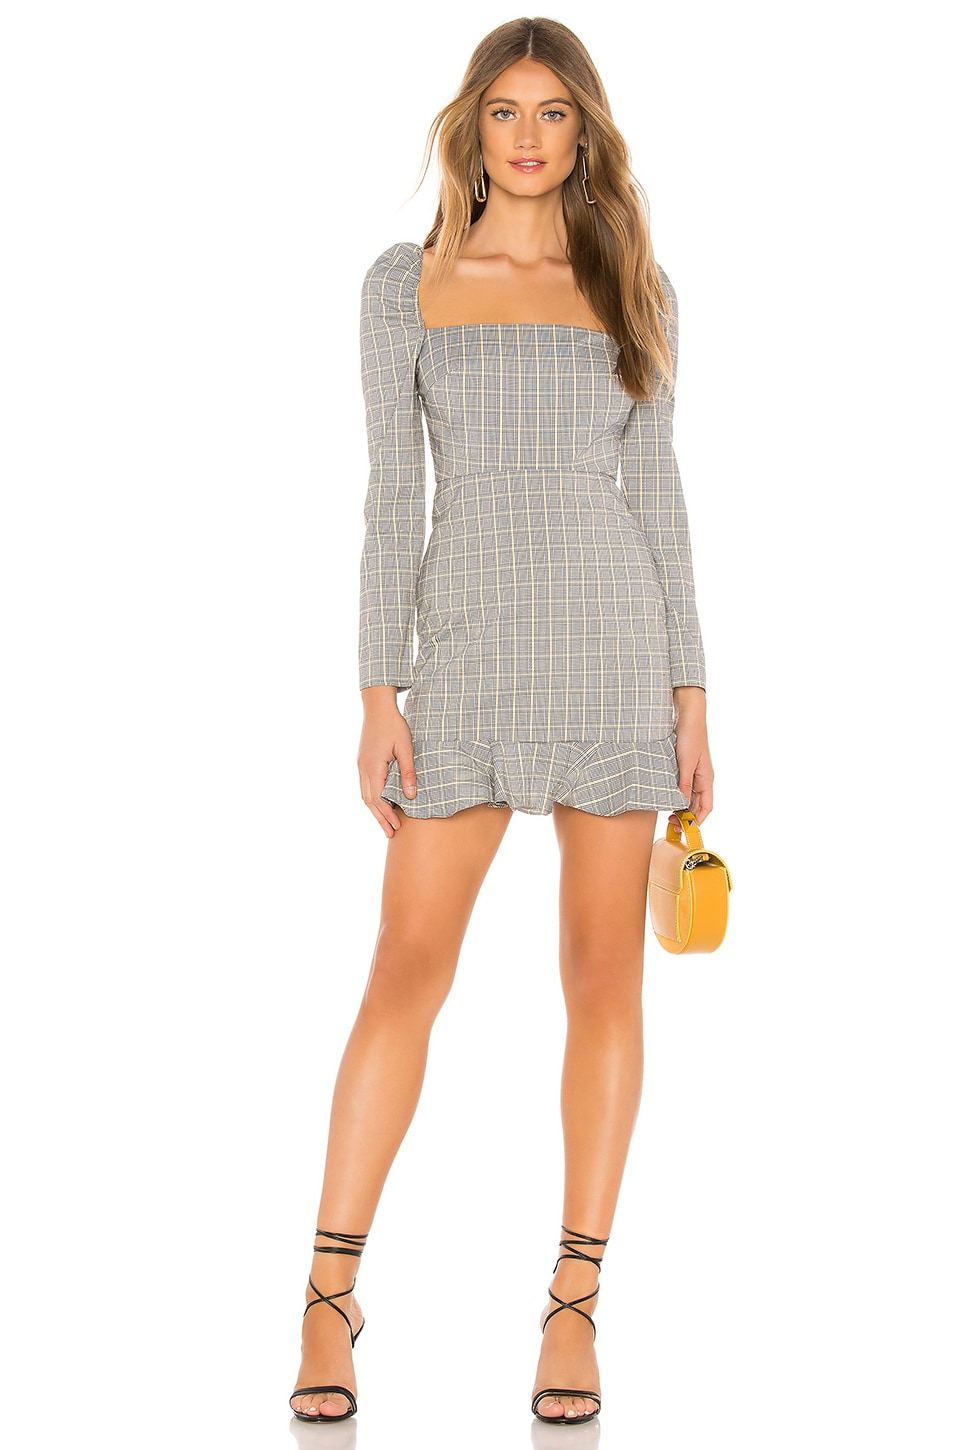 Privacy Please Jay Mini Dress in Black & Yellow Plaid